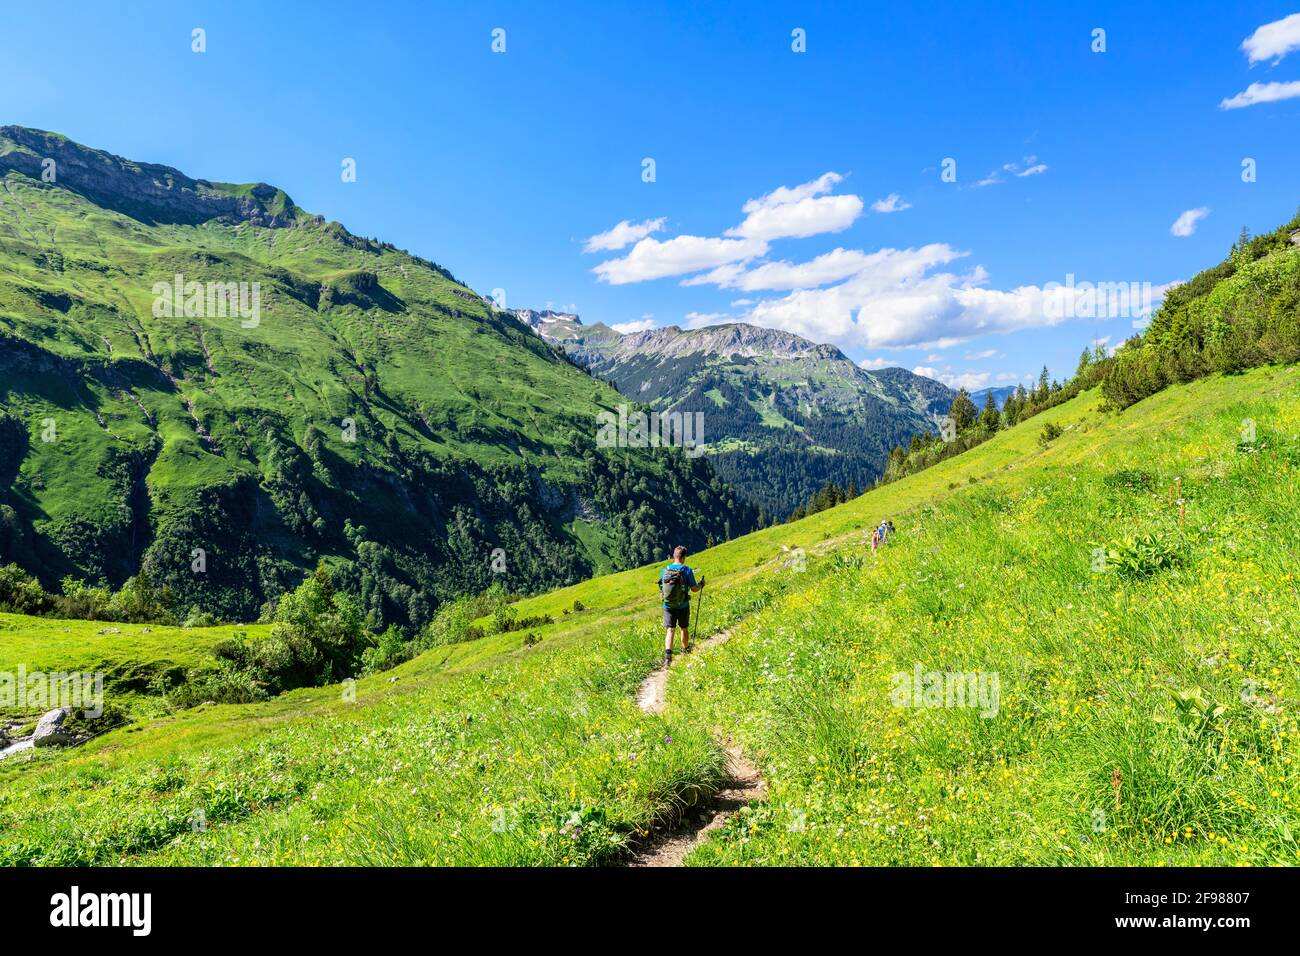 Hikers in alpine mountain landscape with green meadows and forest on a sunny summer day. Allgäu Alps, Bavaria, Germany Stock Photo